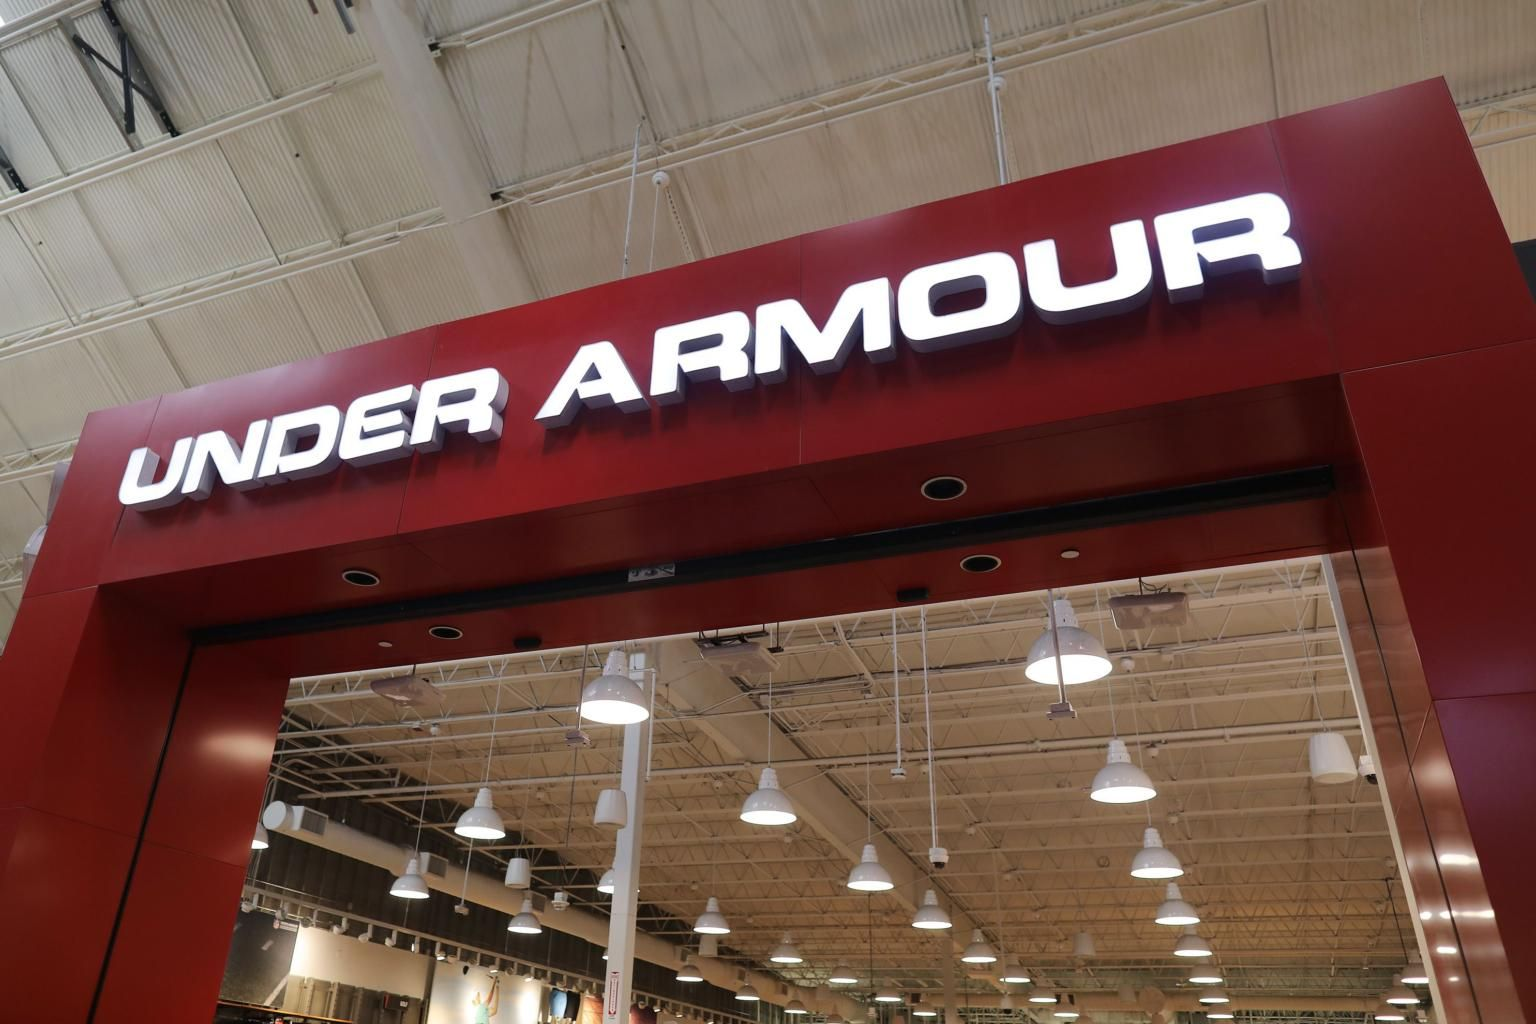 where to find under armour